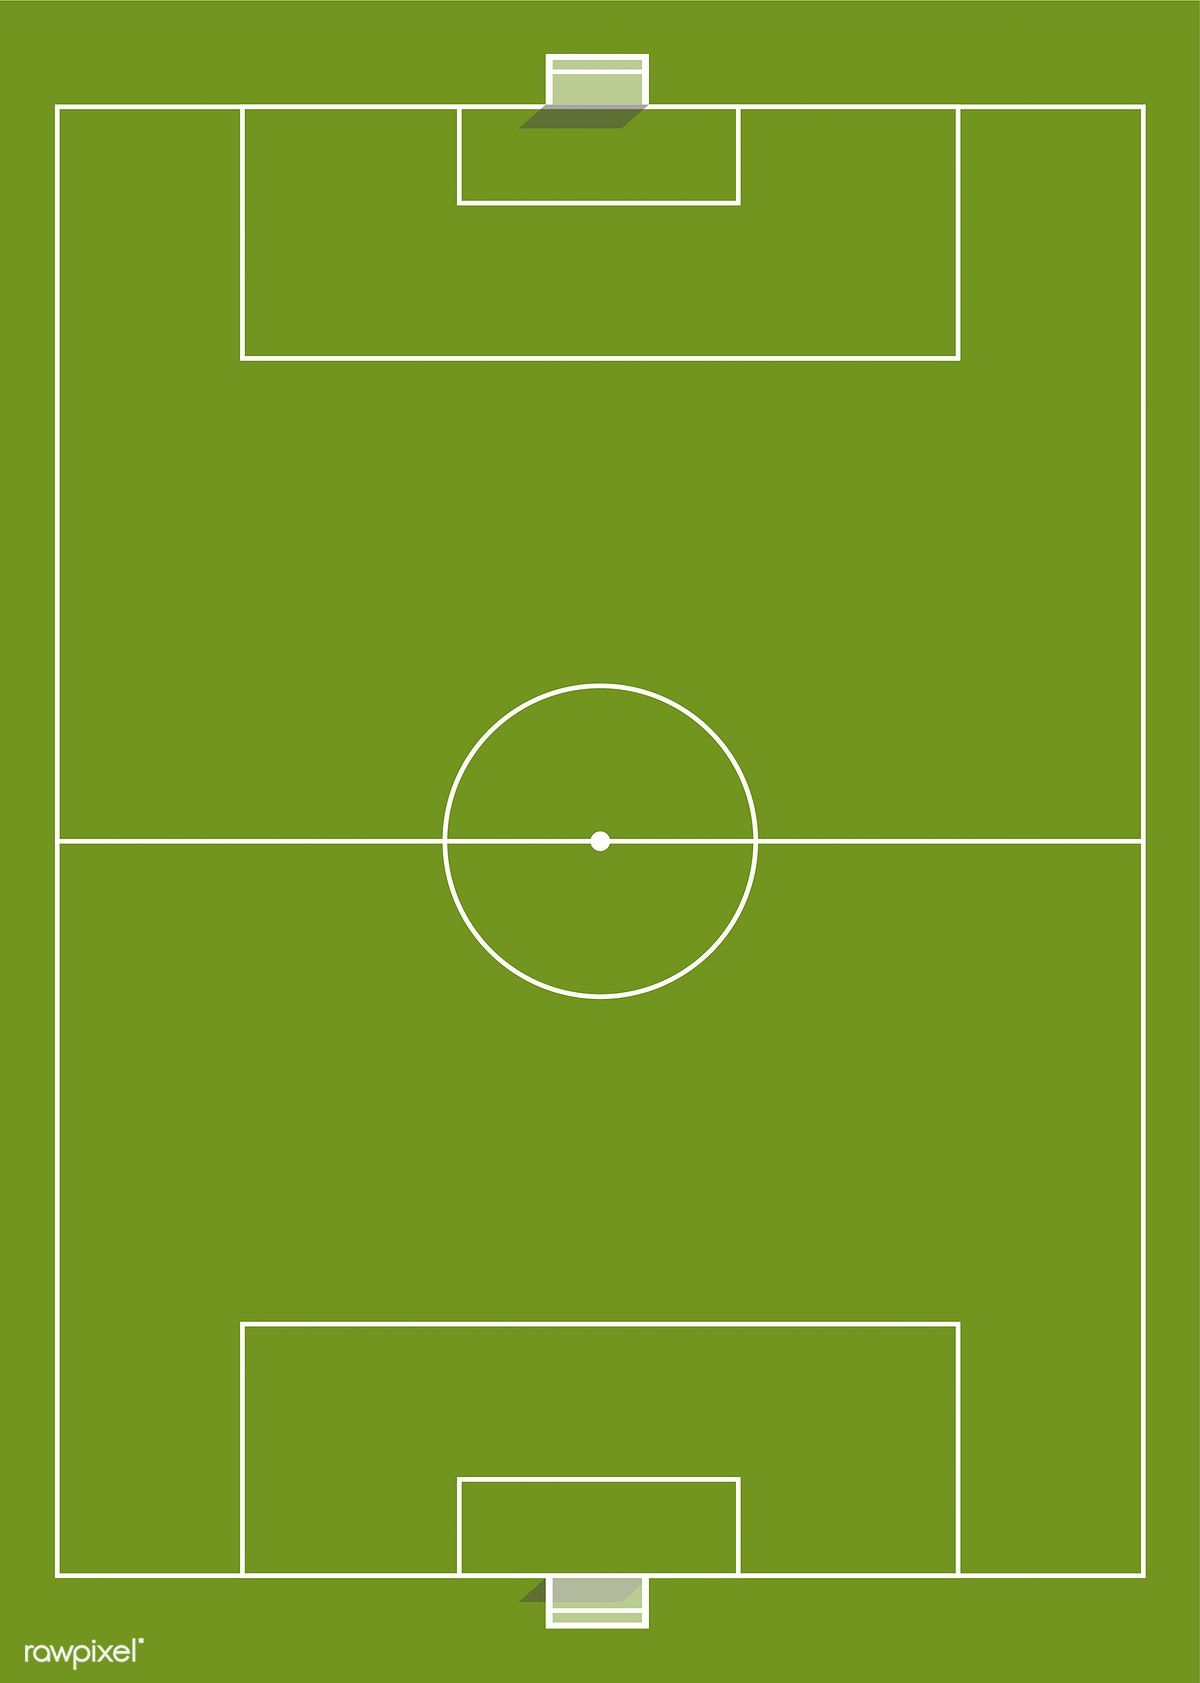 Aerial View Of A Soccer Field Free Image By Rawpixel Com Soccer Field Soccer Soccer Inspiration